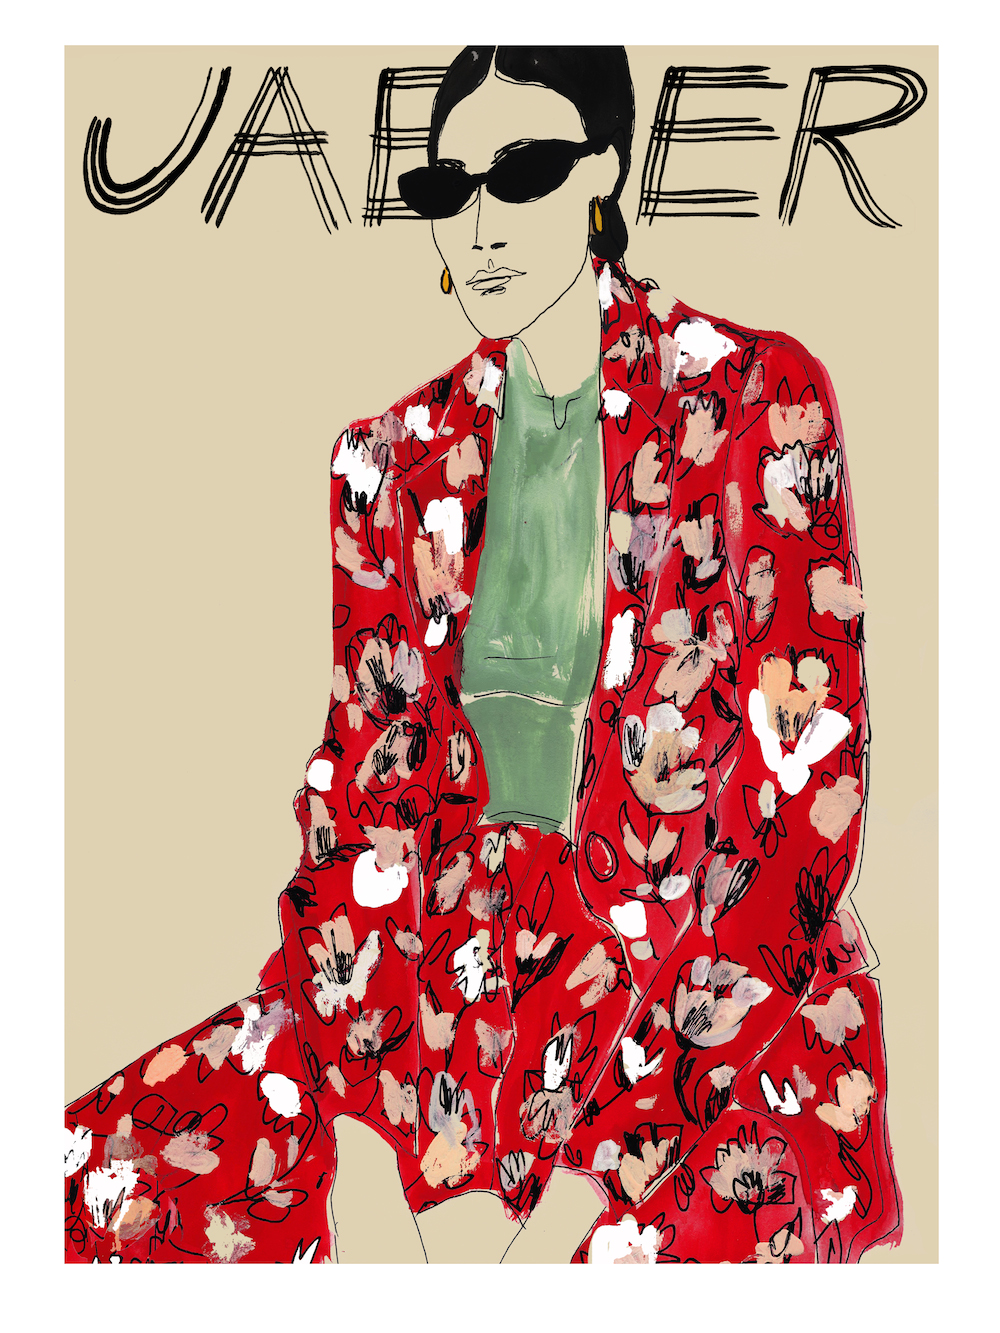 Rosie McGuinness for Jaeger Press Show. - Commissioned by Jaeger for the their Press Show for the new  SS18 collection. Pioneering style since 1884, Jaeger asked Rosie McGuinness to create  9 bespoke images illustrated directly from both the Menswear and Womenswear collections. Displayed on large screens amongst the clothes , with lucky members of the fashion press receiving a limited edition print of her work to take home.